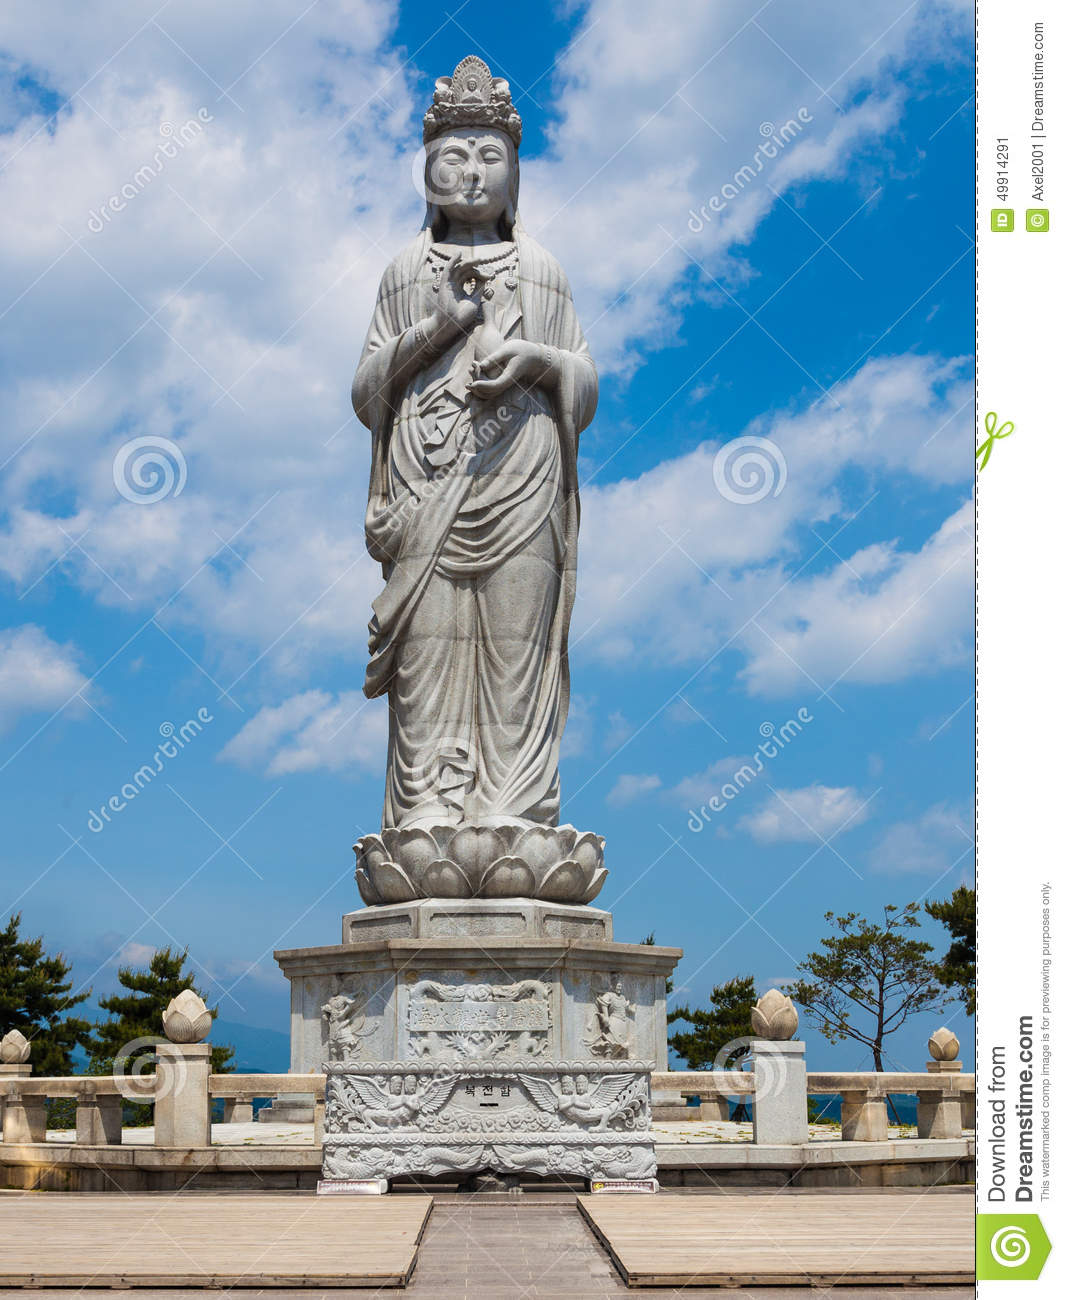 Statue In Naksansa Temple In Sokcho, South Korea. Stock Photo.